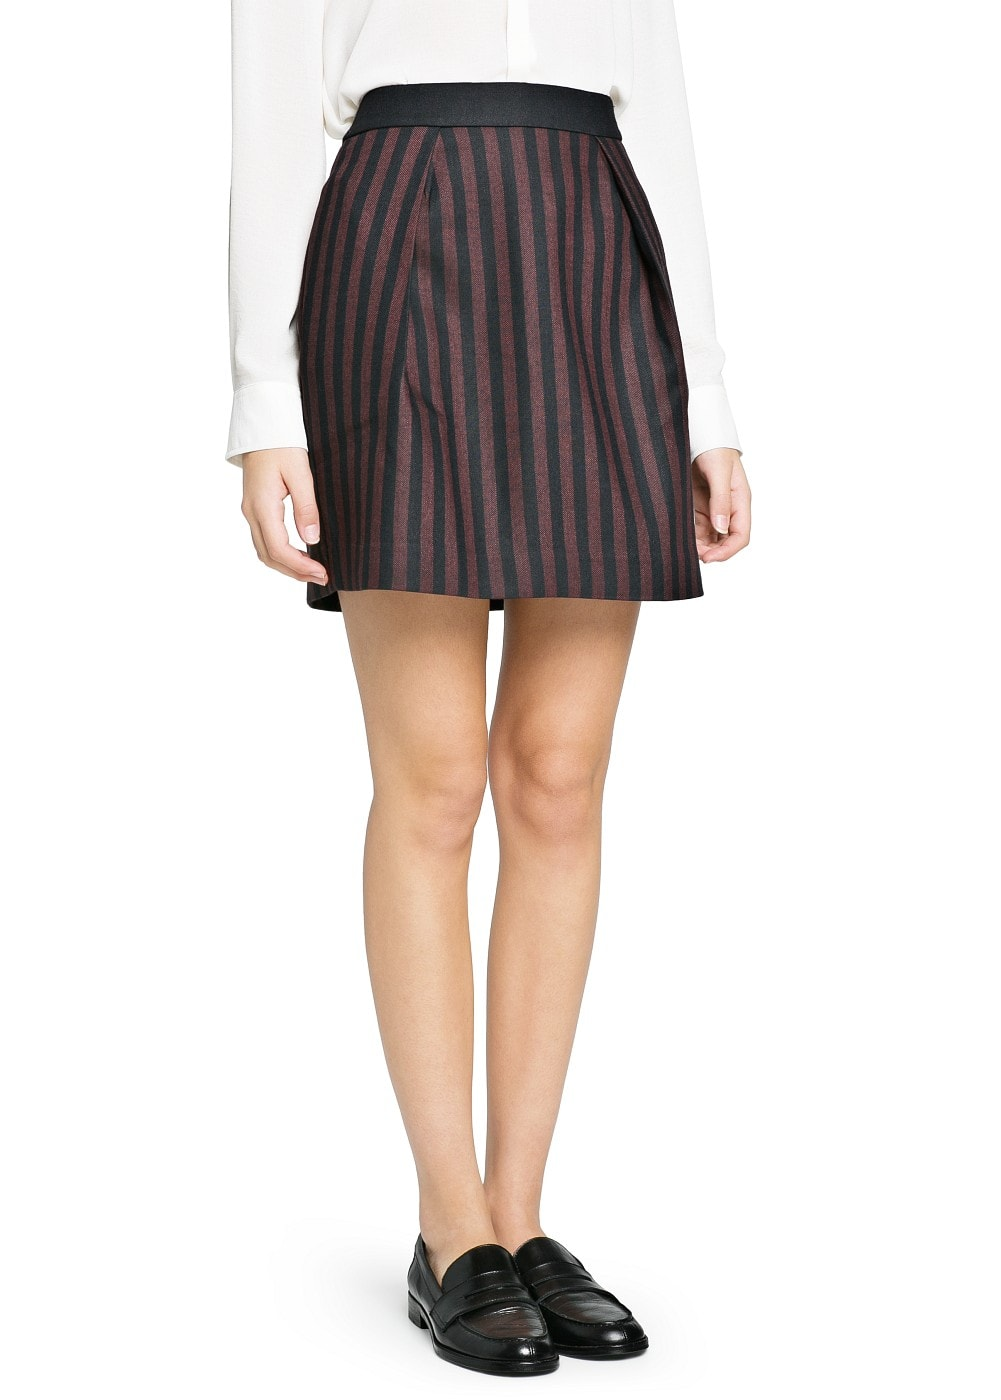 High-waist striped miniskirt